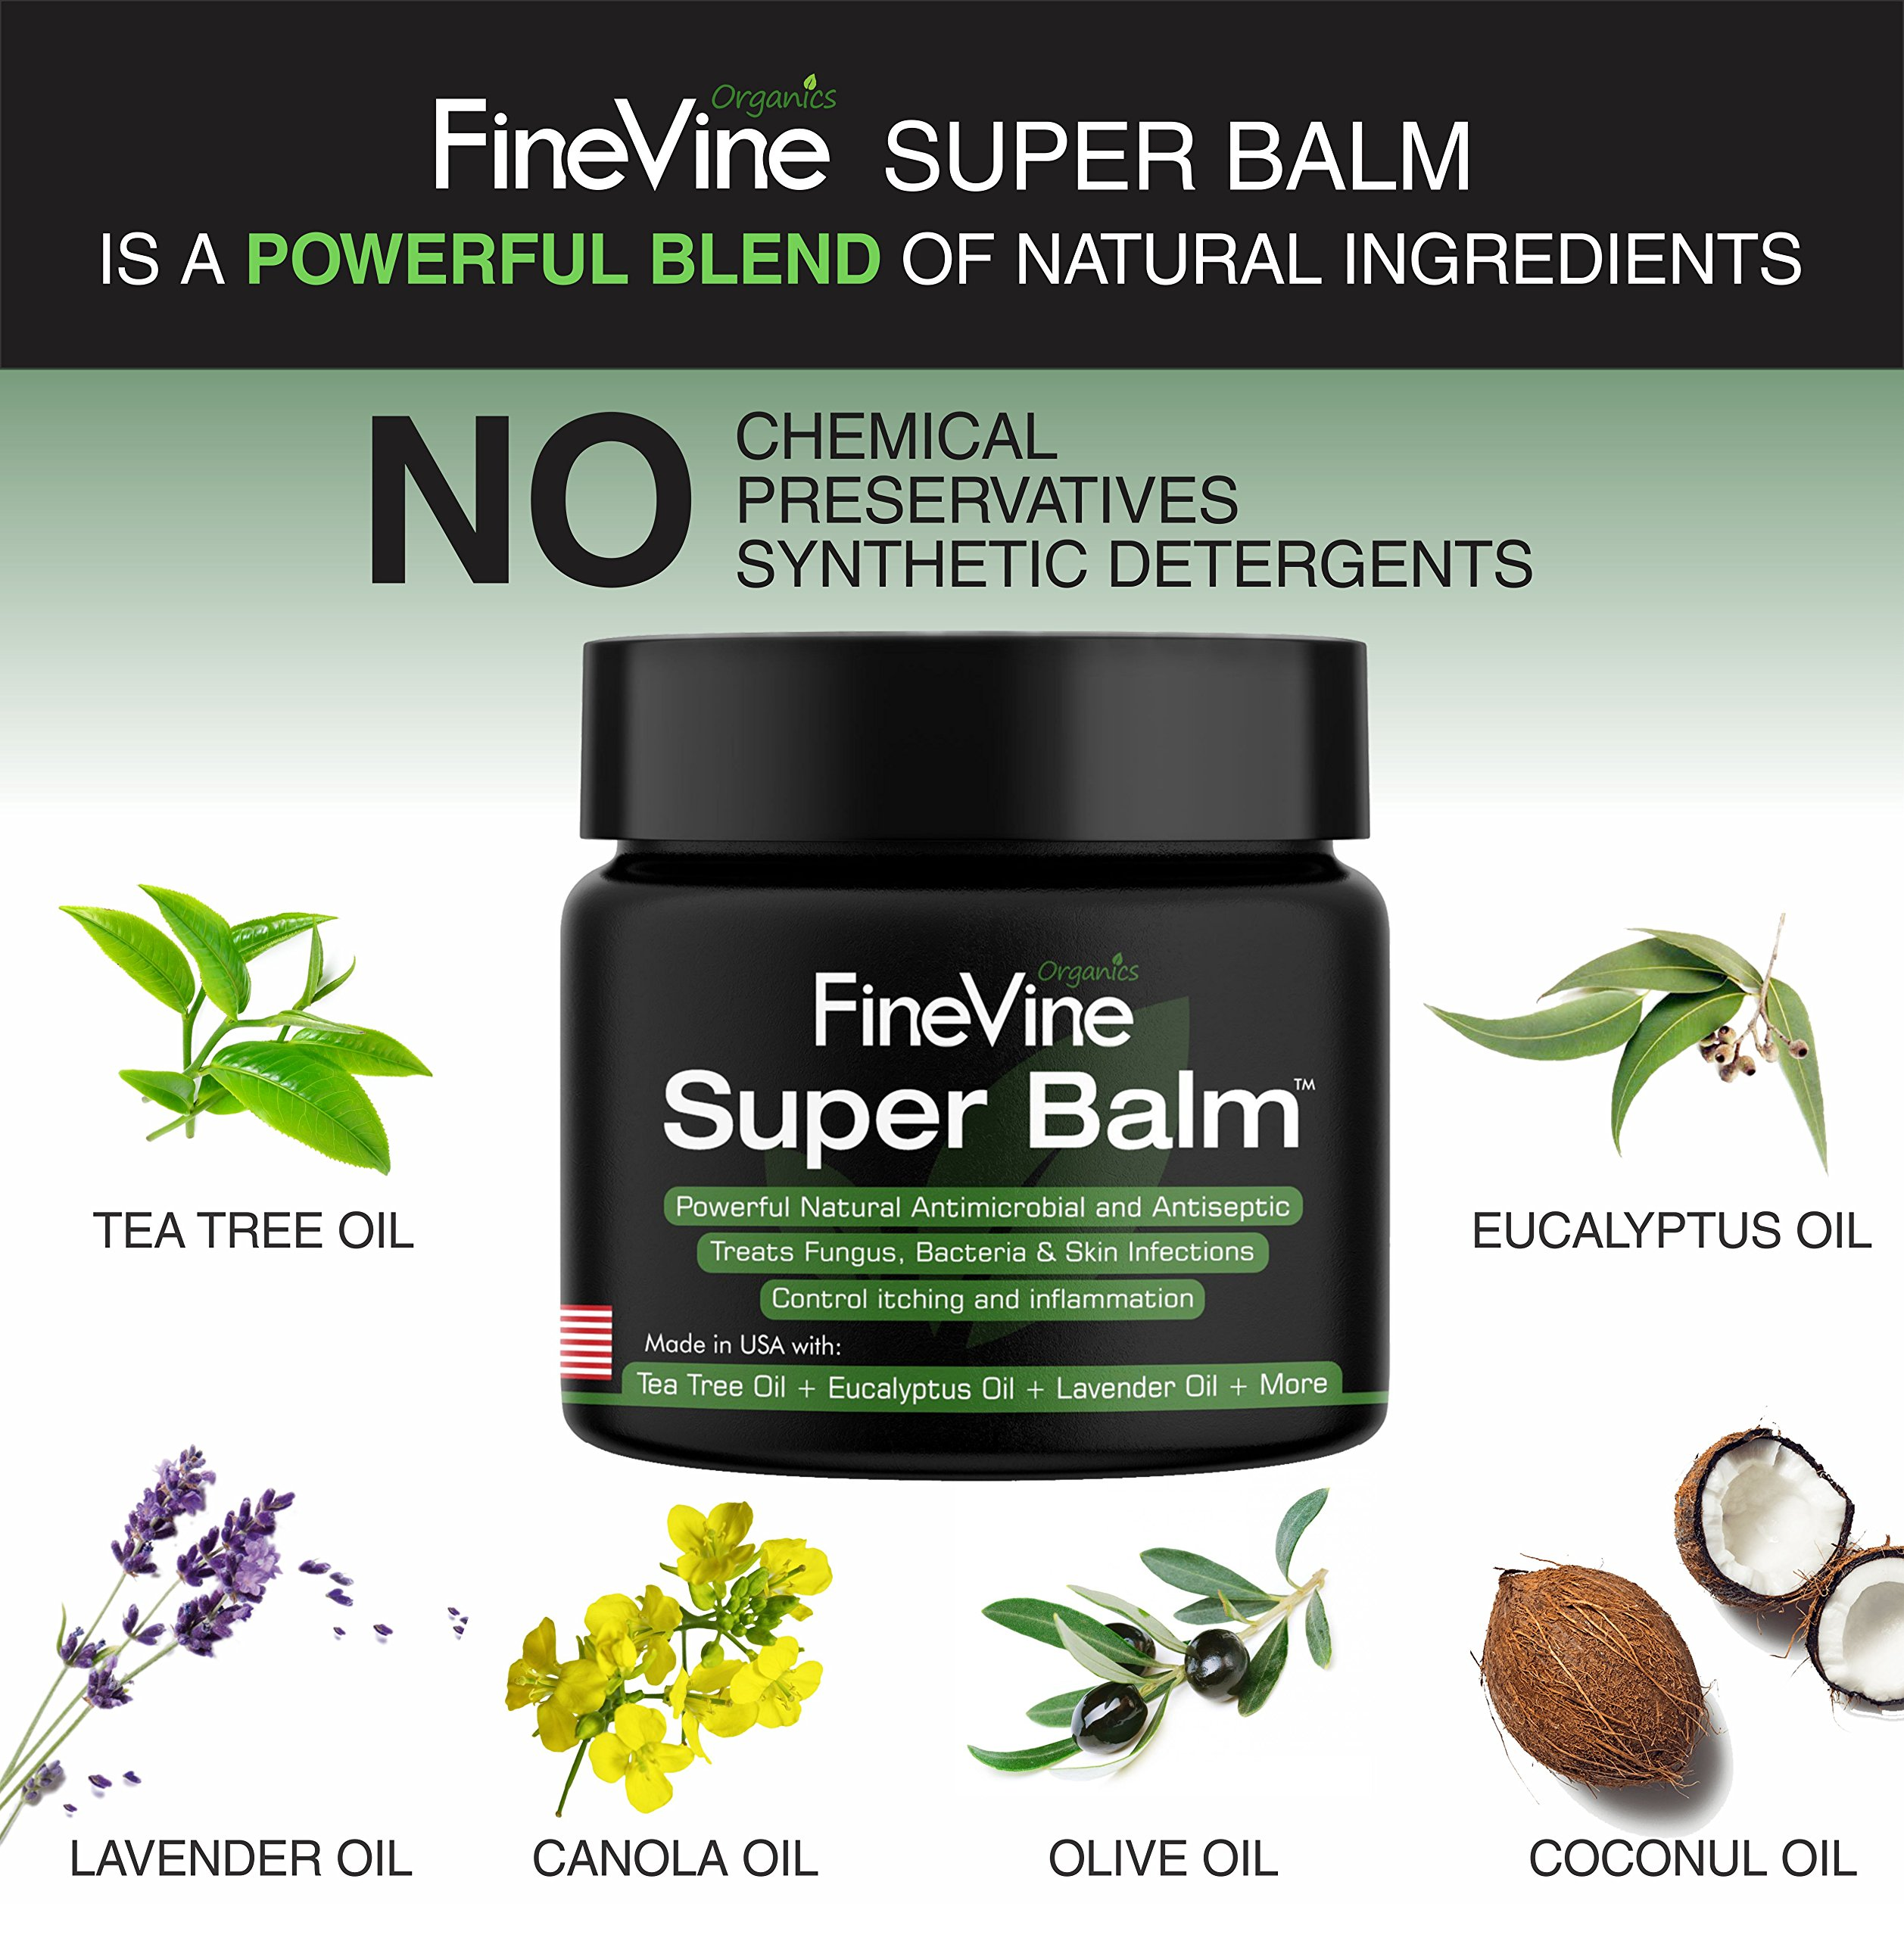 Antifungal Balm - Made in USA - Helps Treat Eczema, Ringworm, Jock Itch, Athletes Foot and Nail Fungal Infections - Best Natural Ointment to Soothes Itchy, Scaly or Cracked Skin. by FineVine (Image #5)